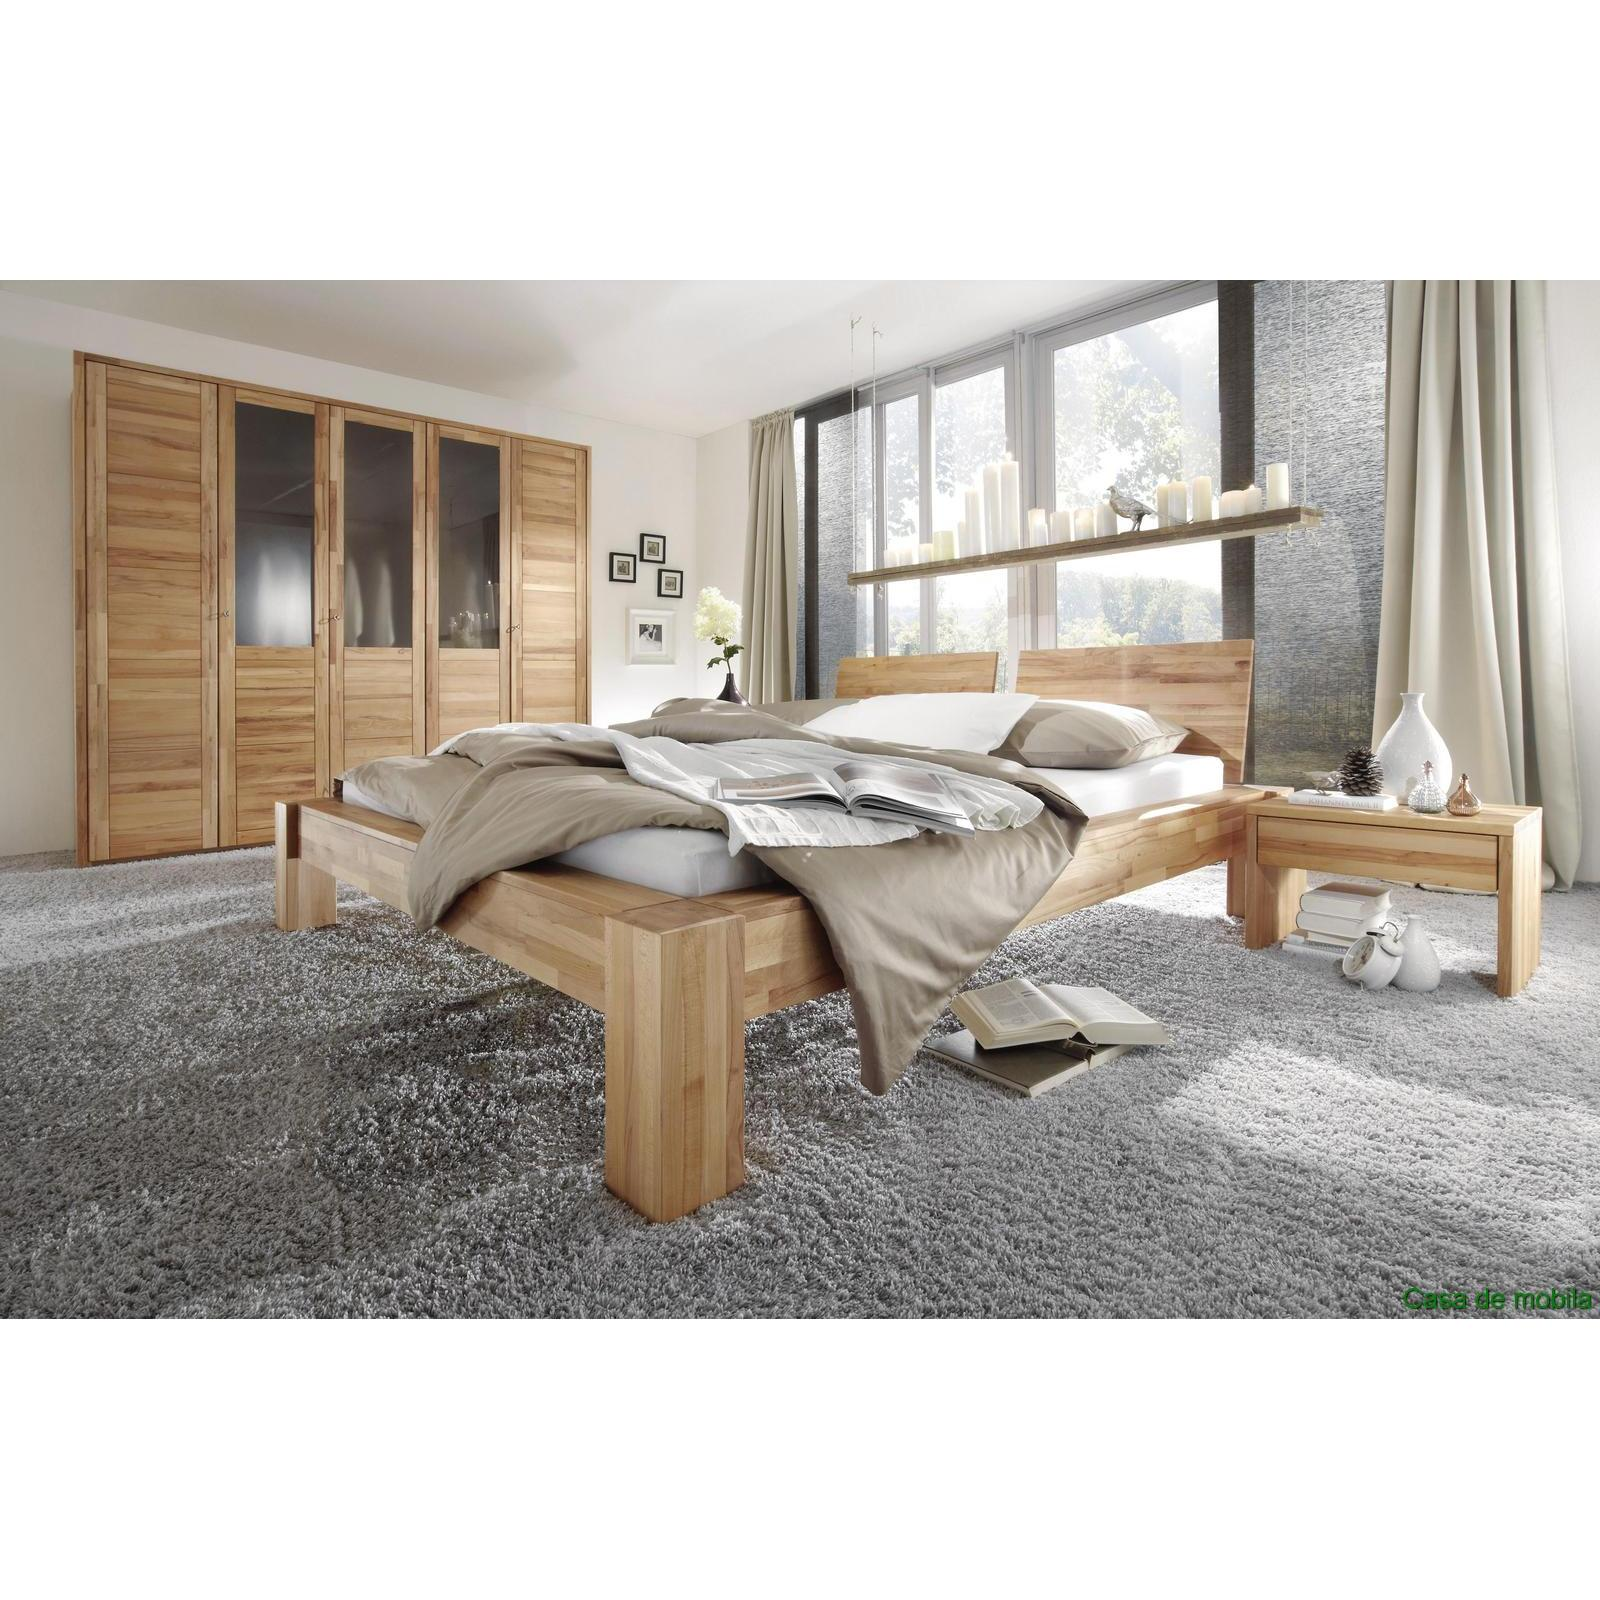 echtholz schlafzimmer komplett kernbuche massiv hercules bett 160x200. Black Bedroom Furniture Sets. Home Design Ideas